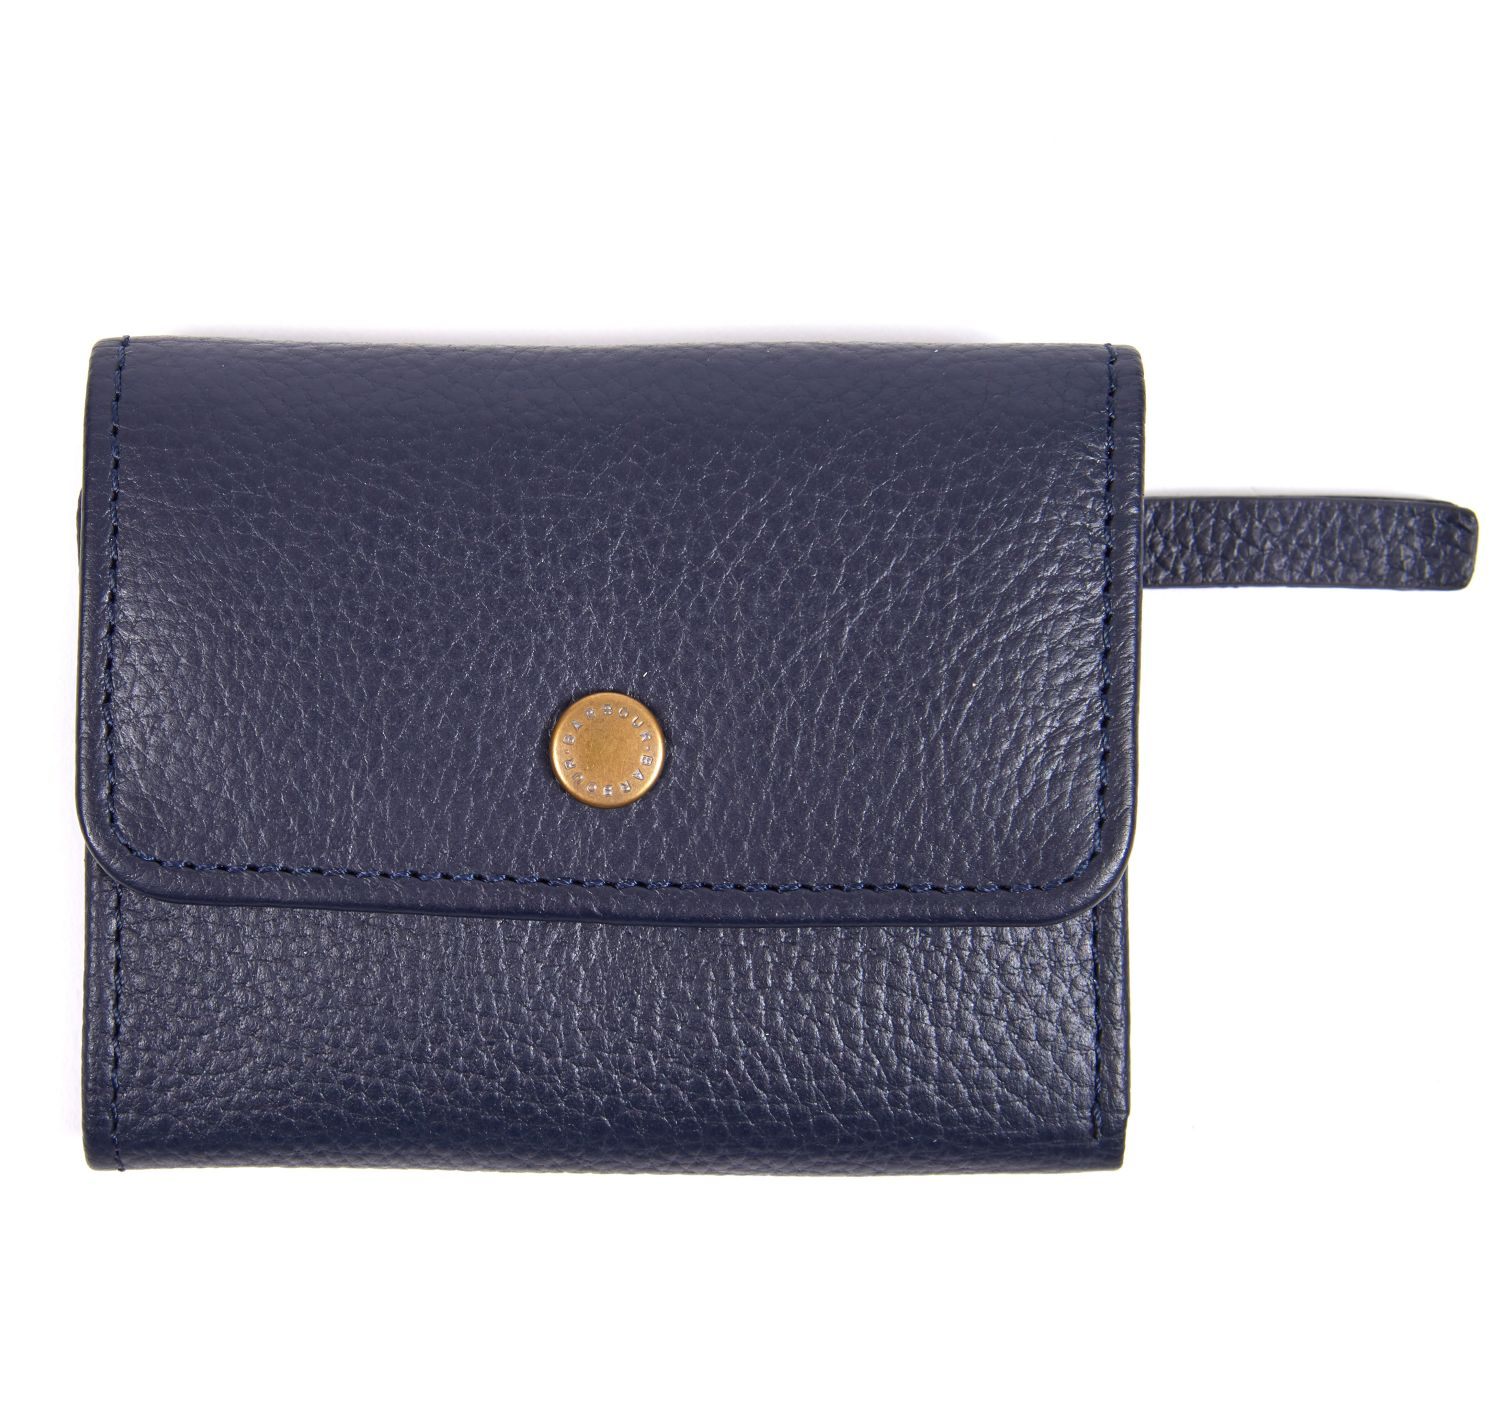 Barbour Barbour Barbour Leather Billfold Purse Navy